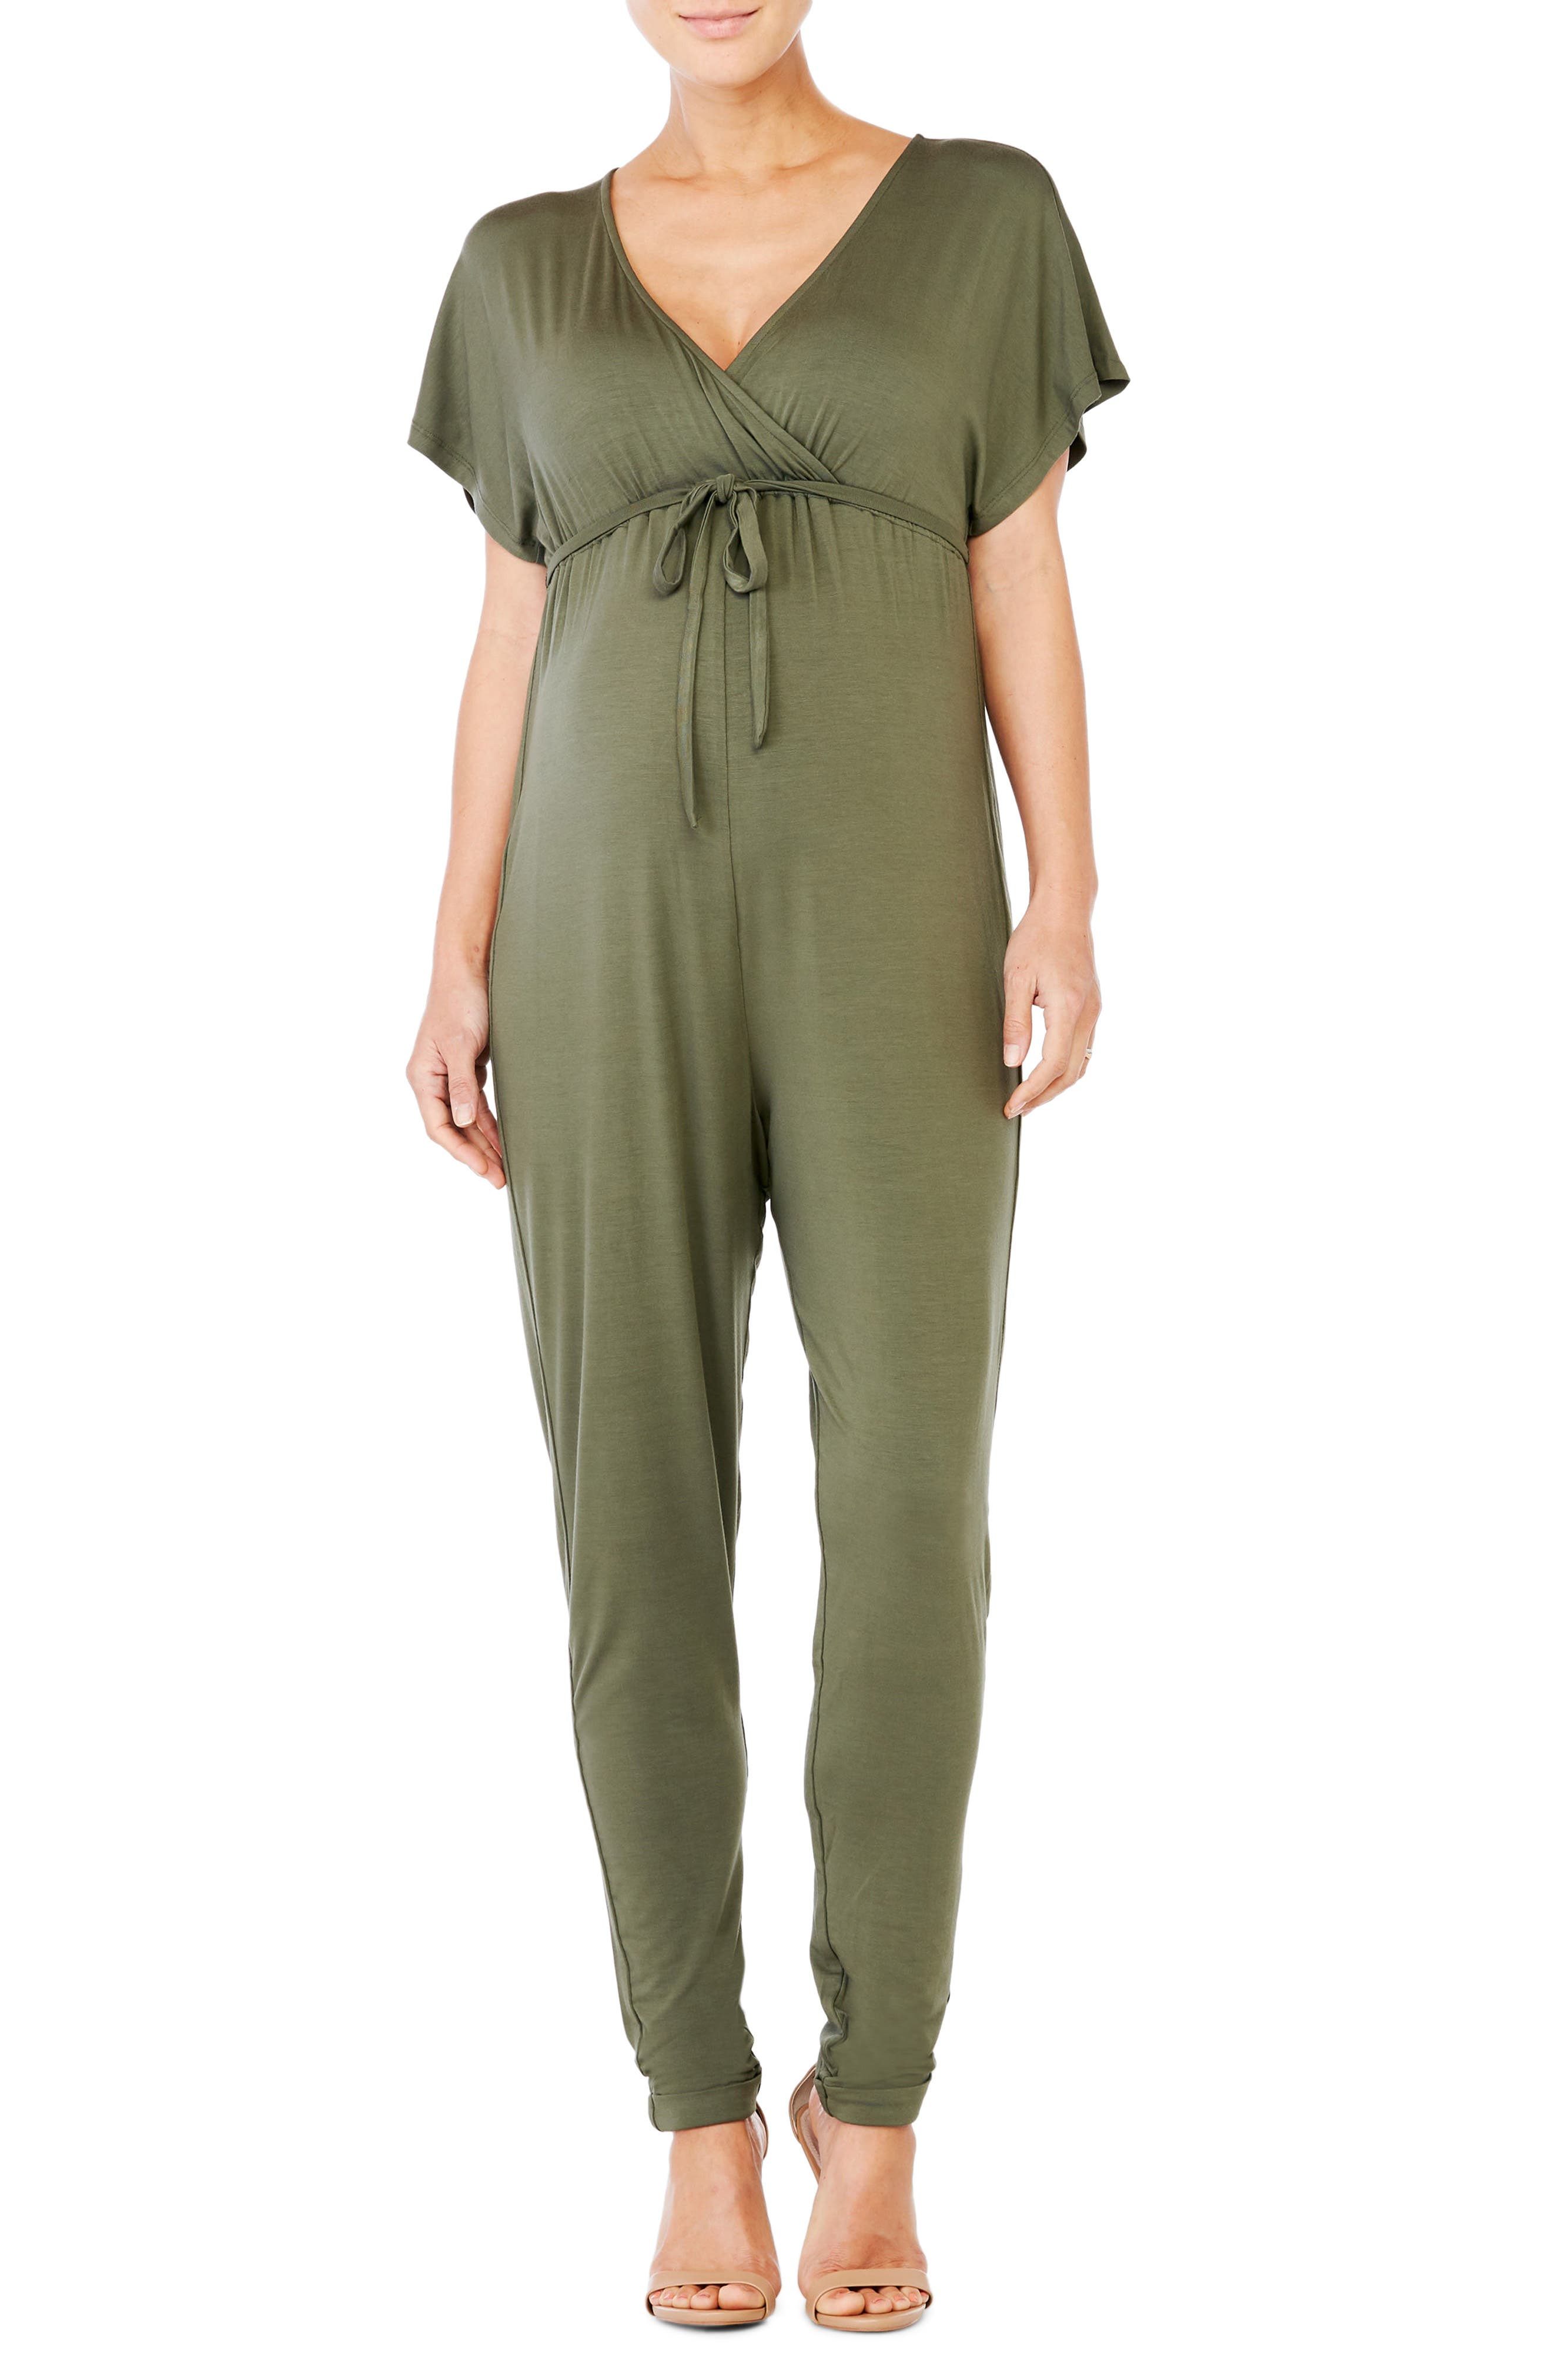 Crossover Maternity Jumpsuit,                         Main,                         color, OLIVE